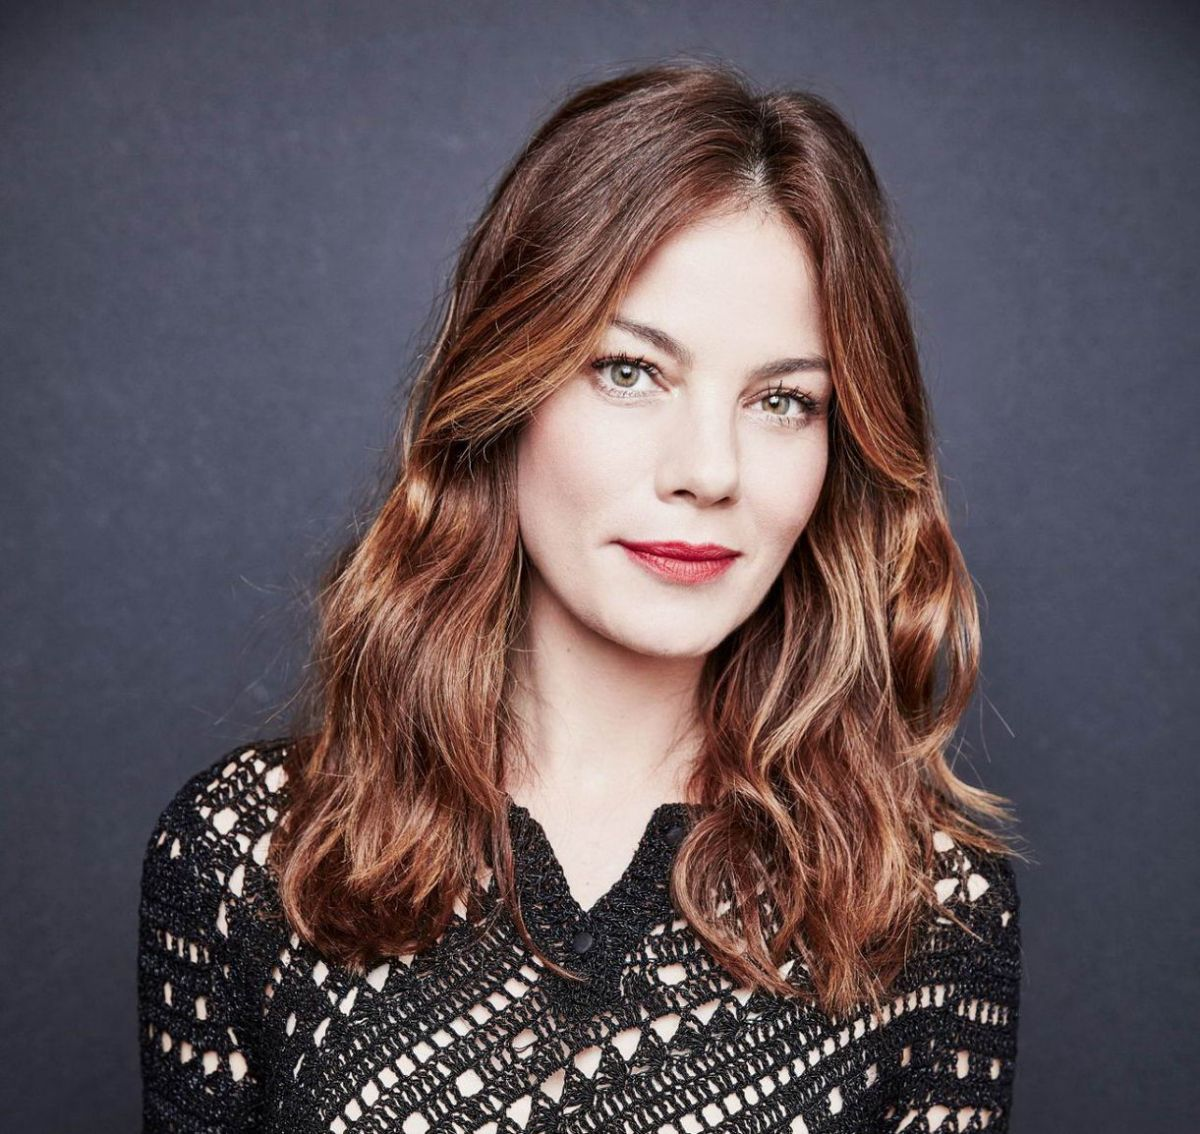 Michelle Monaghan At Portraits For 2016 Winter TCA In Pasadena